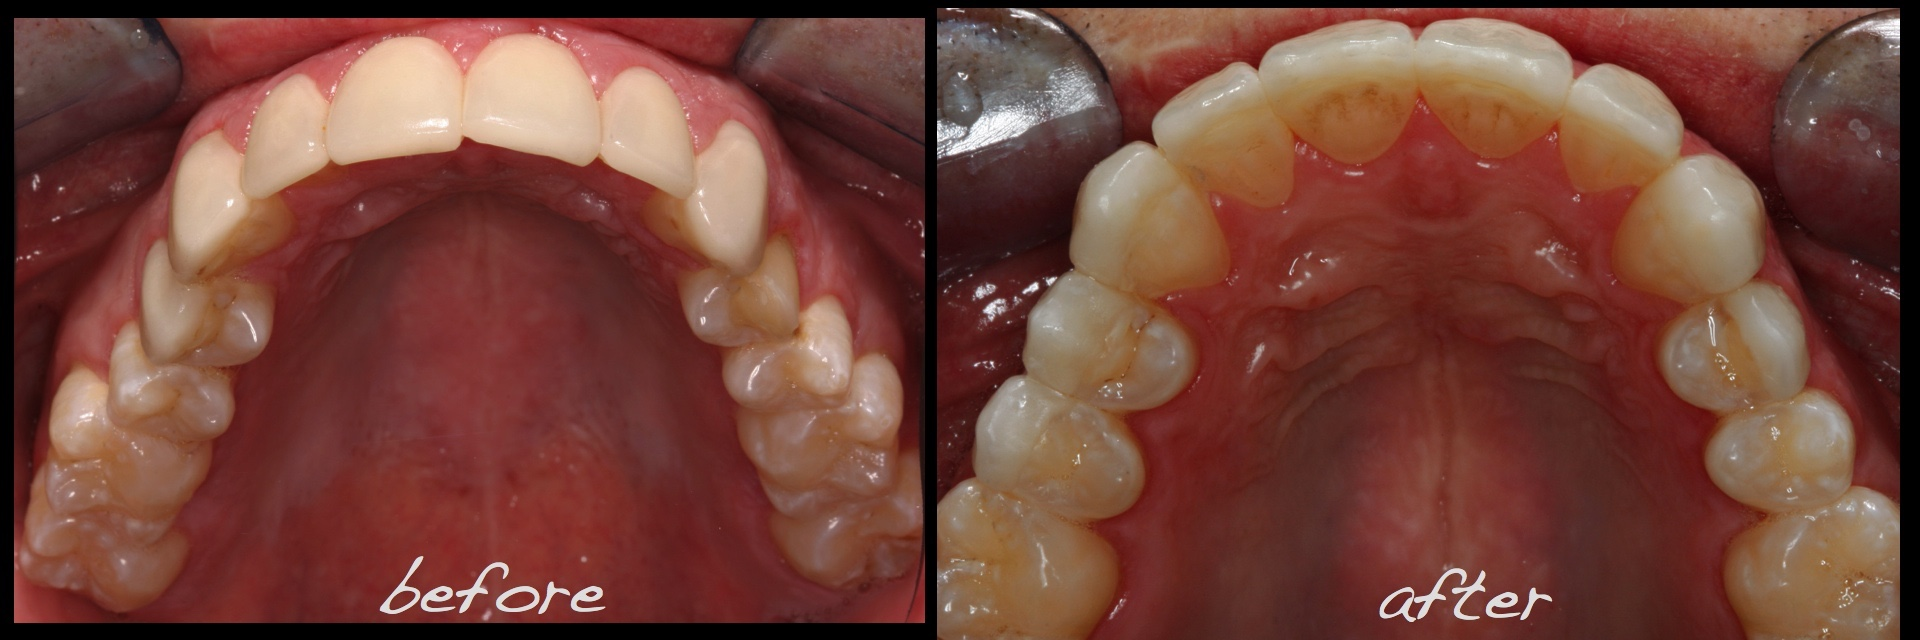 Revised porcelain laminate veneer therapy and associated pre occlsual equilibration.